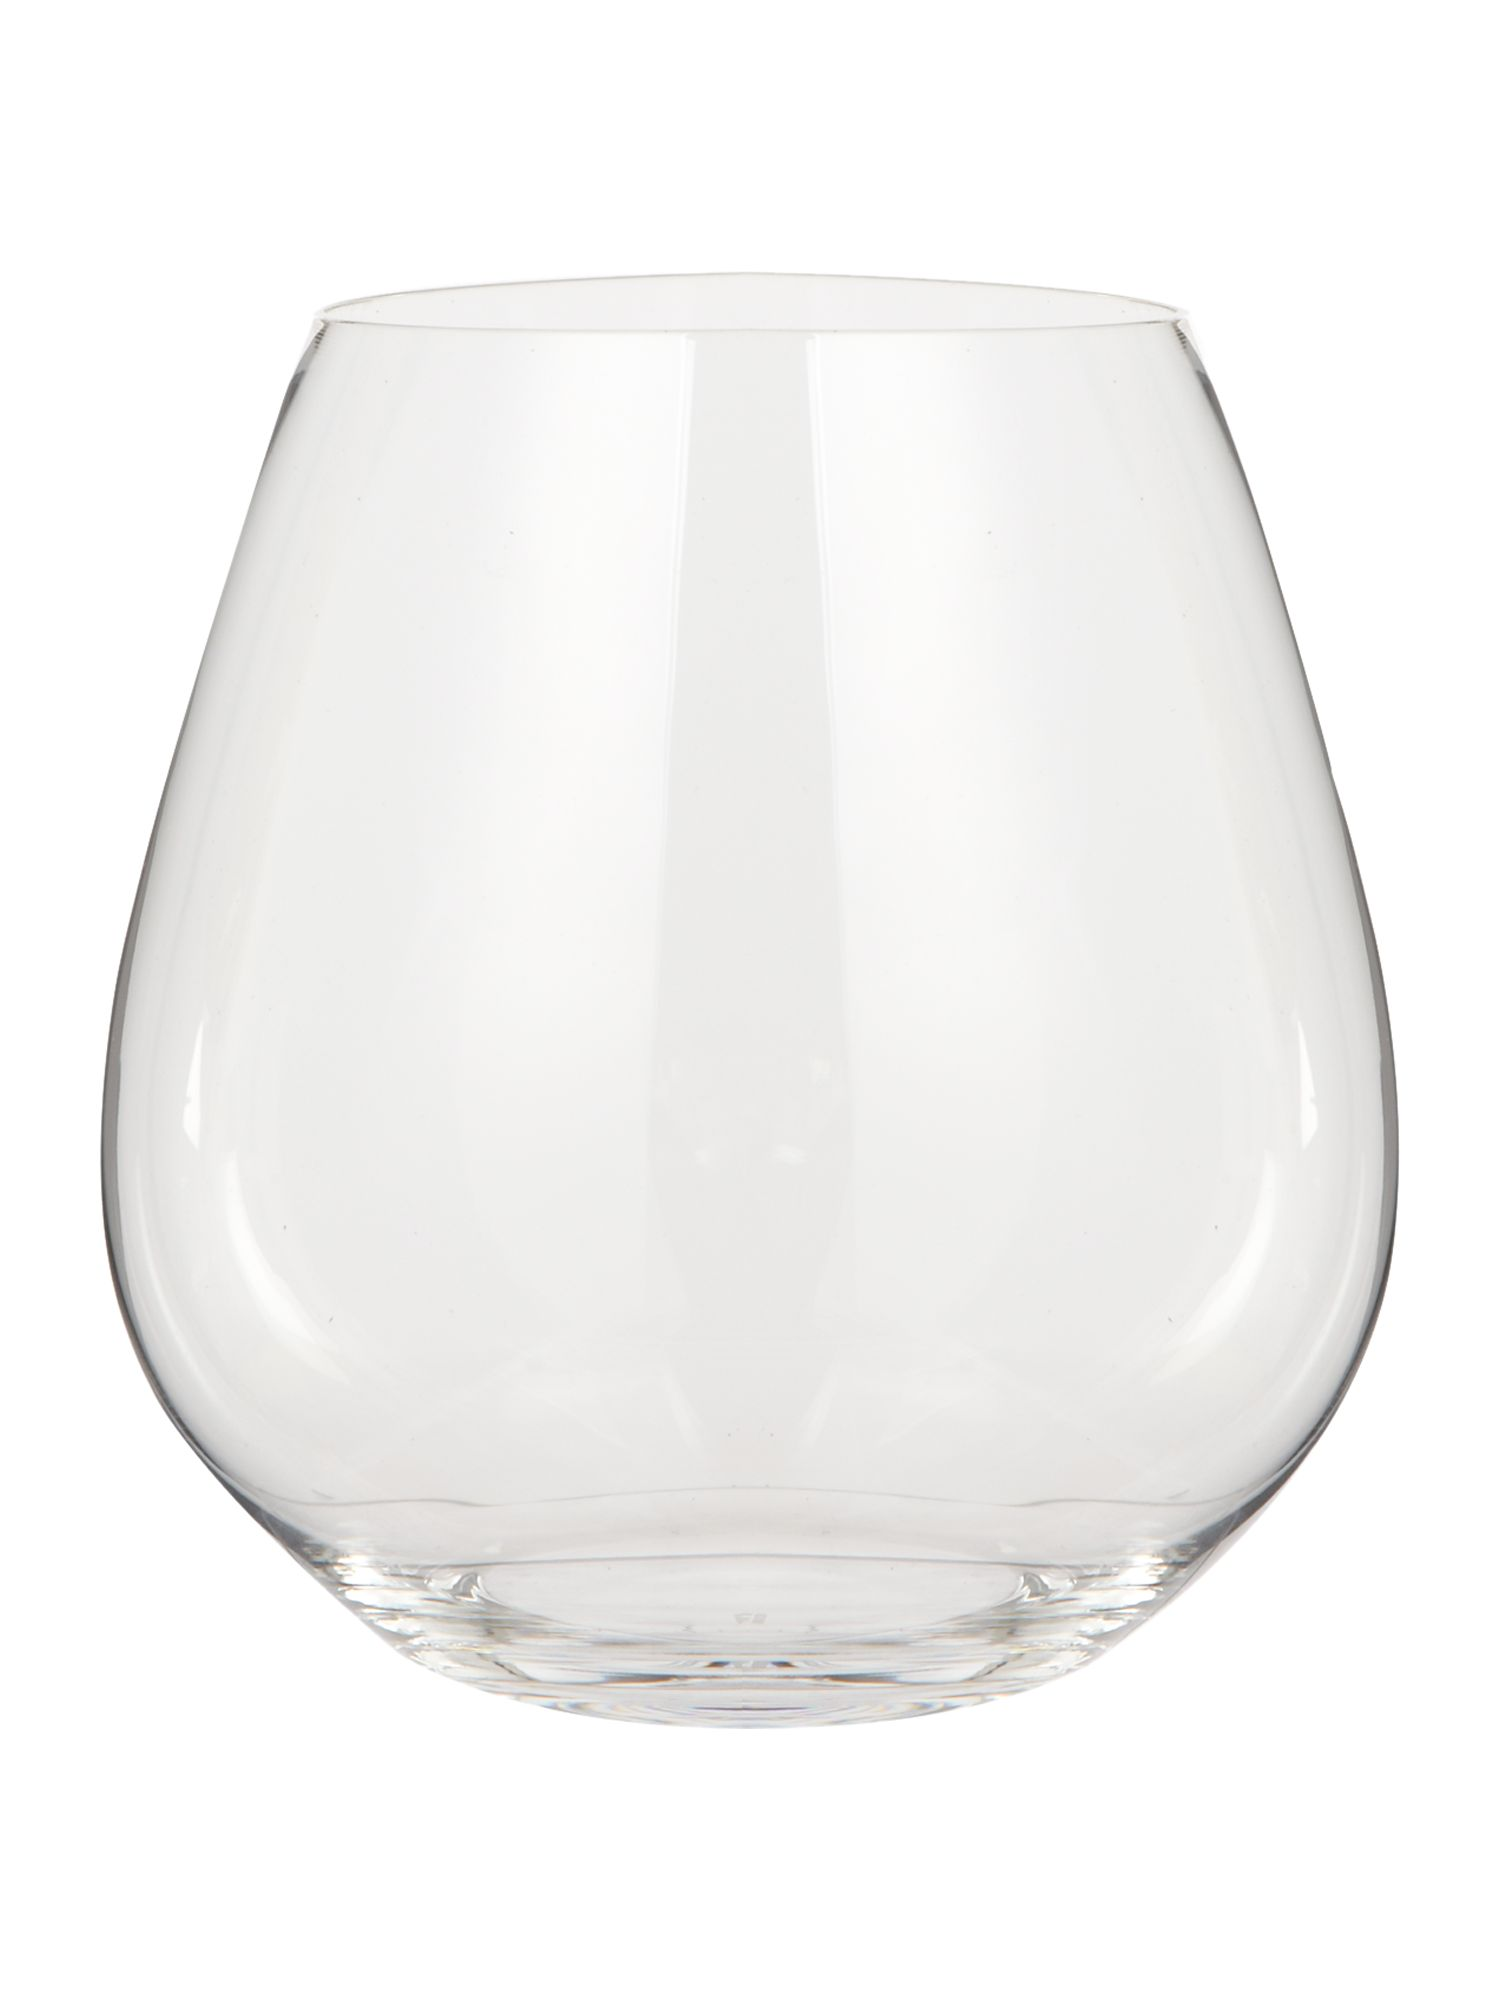 Pinot nebbiolo tumbler glasses, box of 2